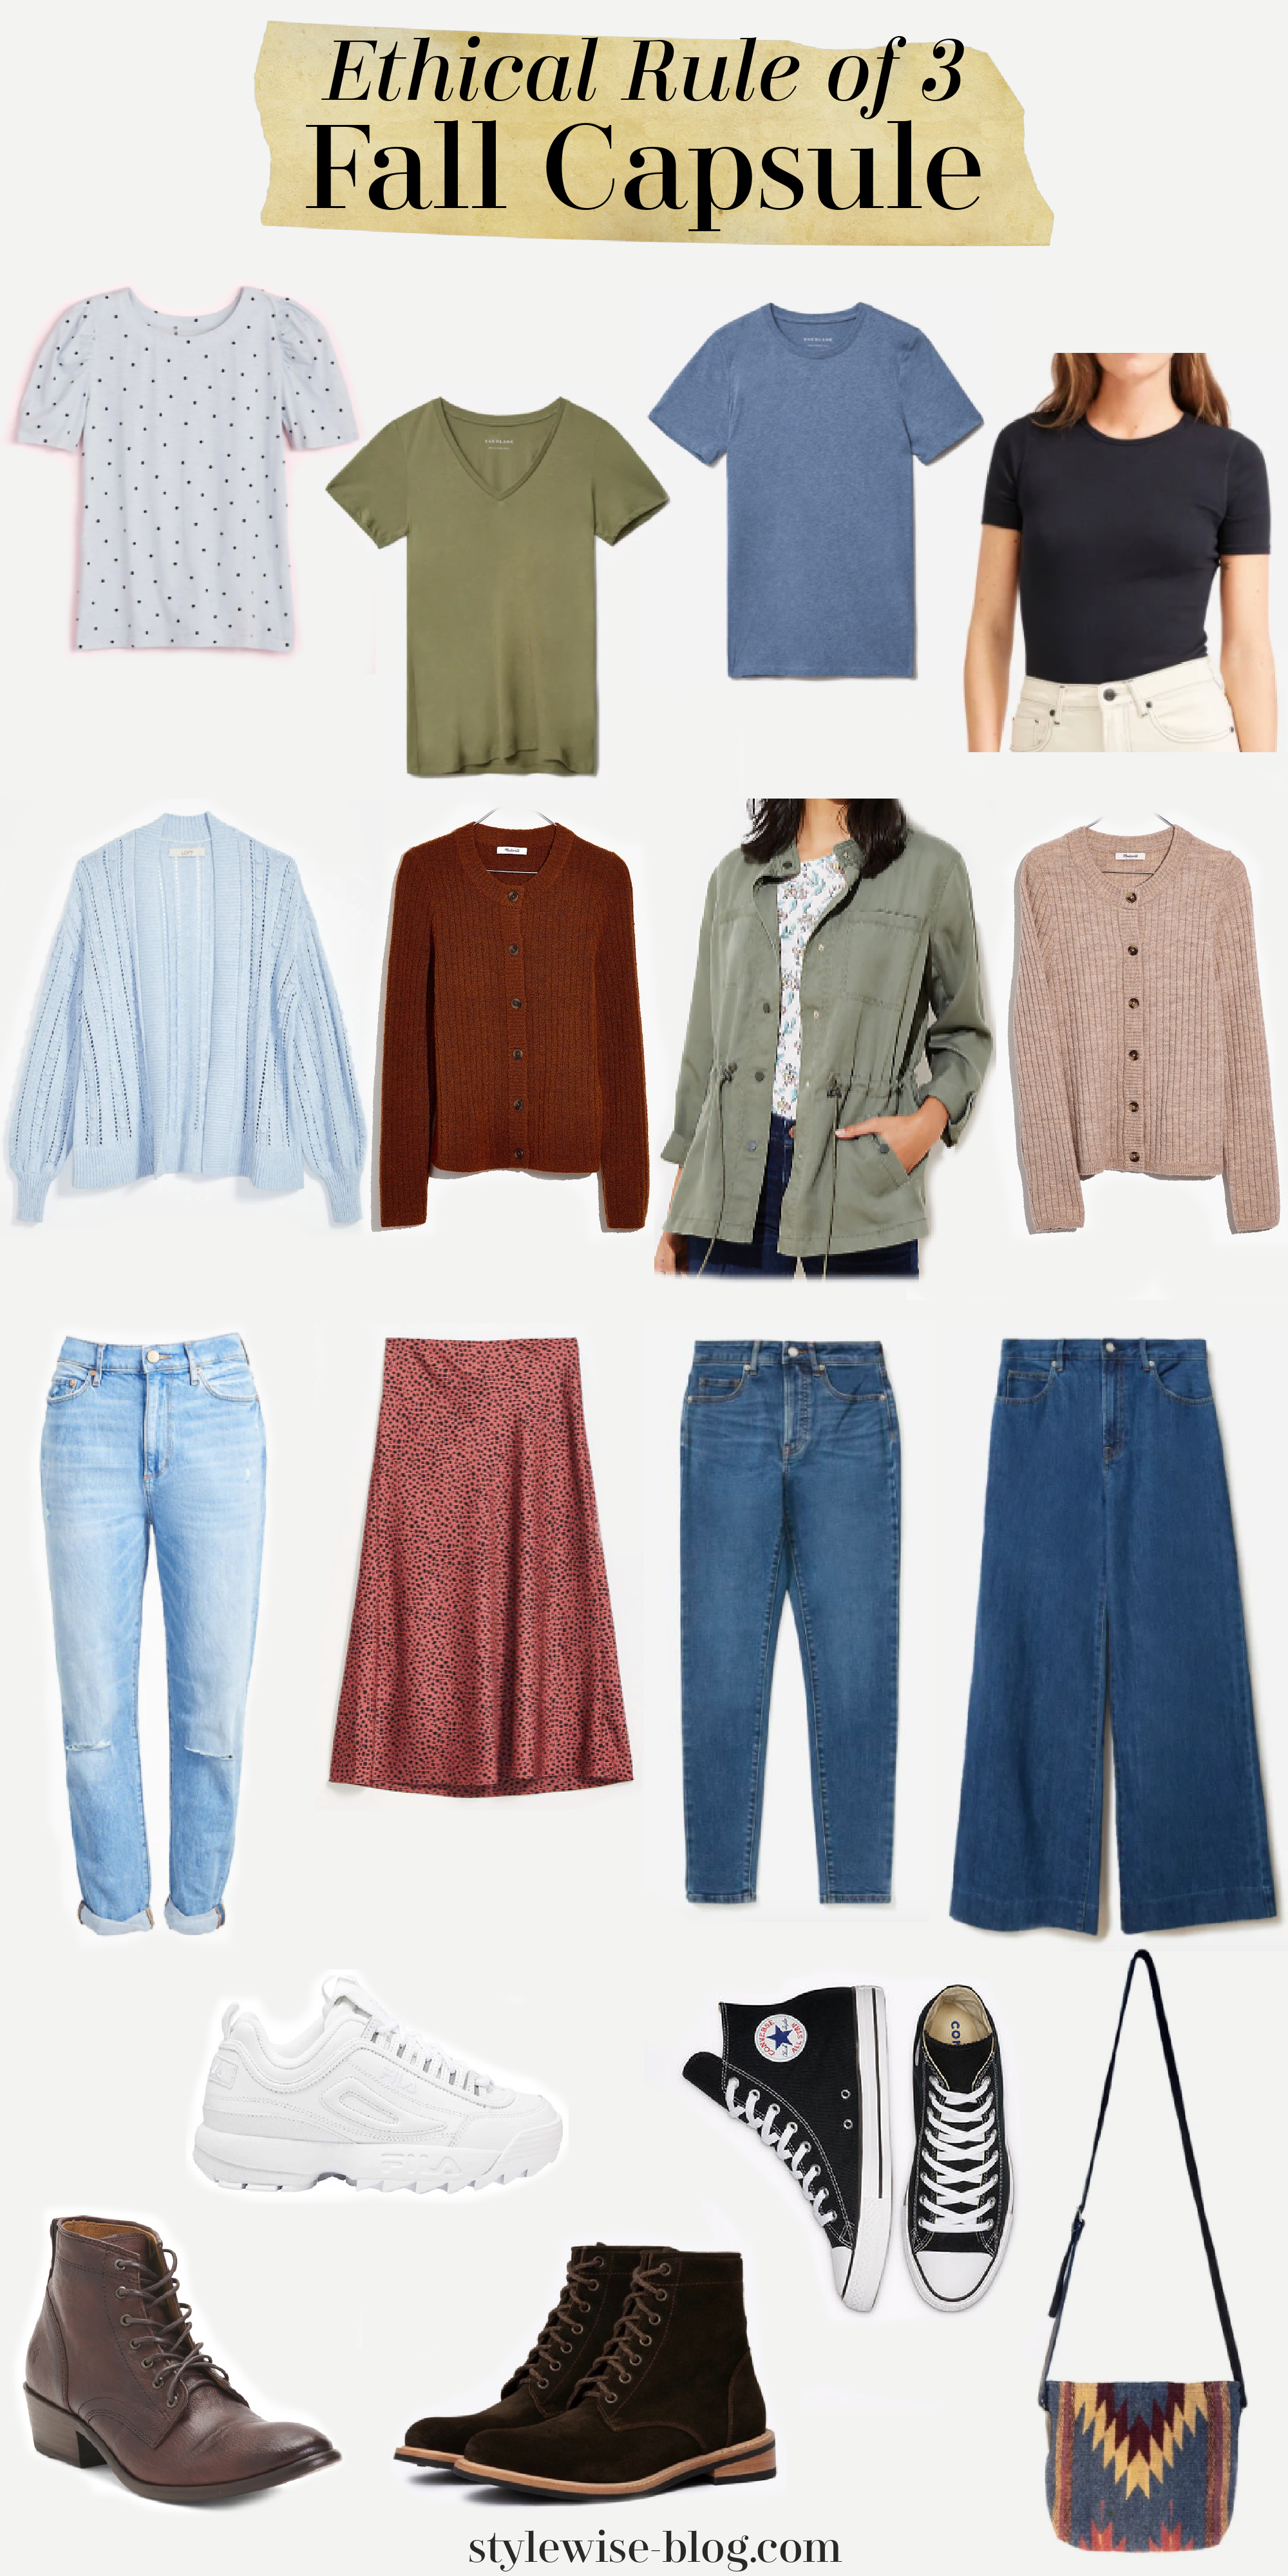 ethical rule of 3 slow fashion fall capsule